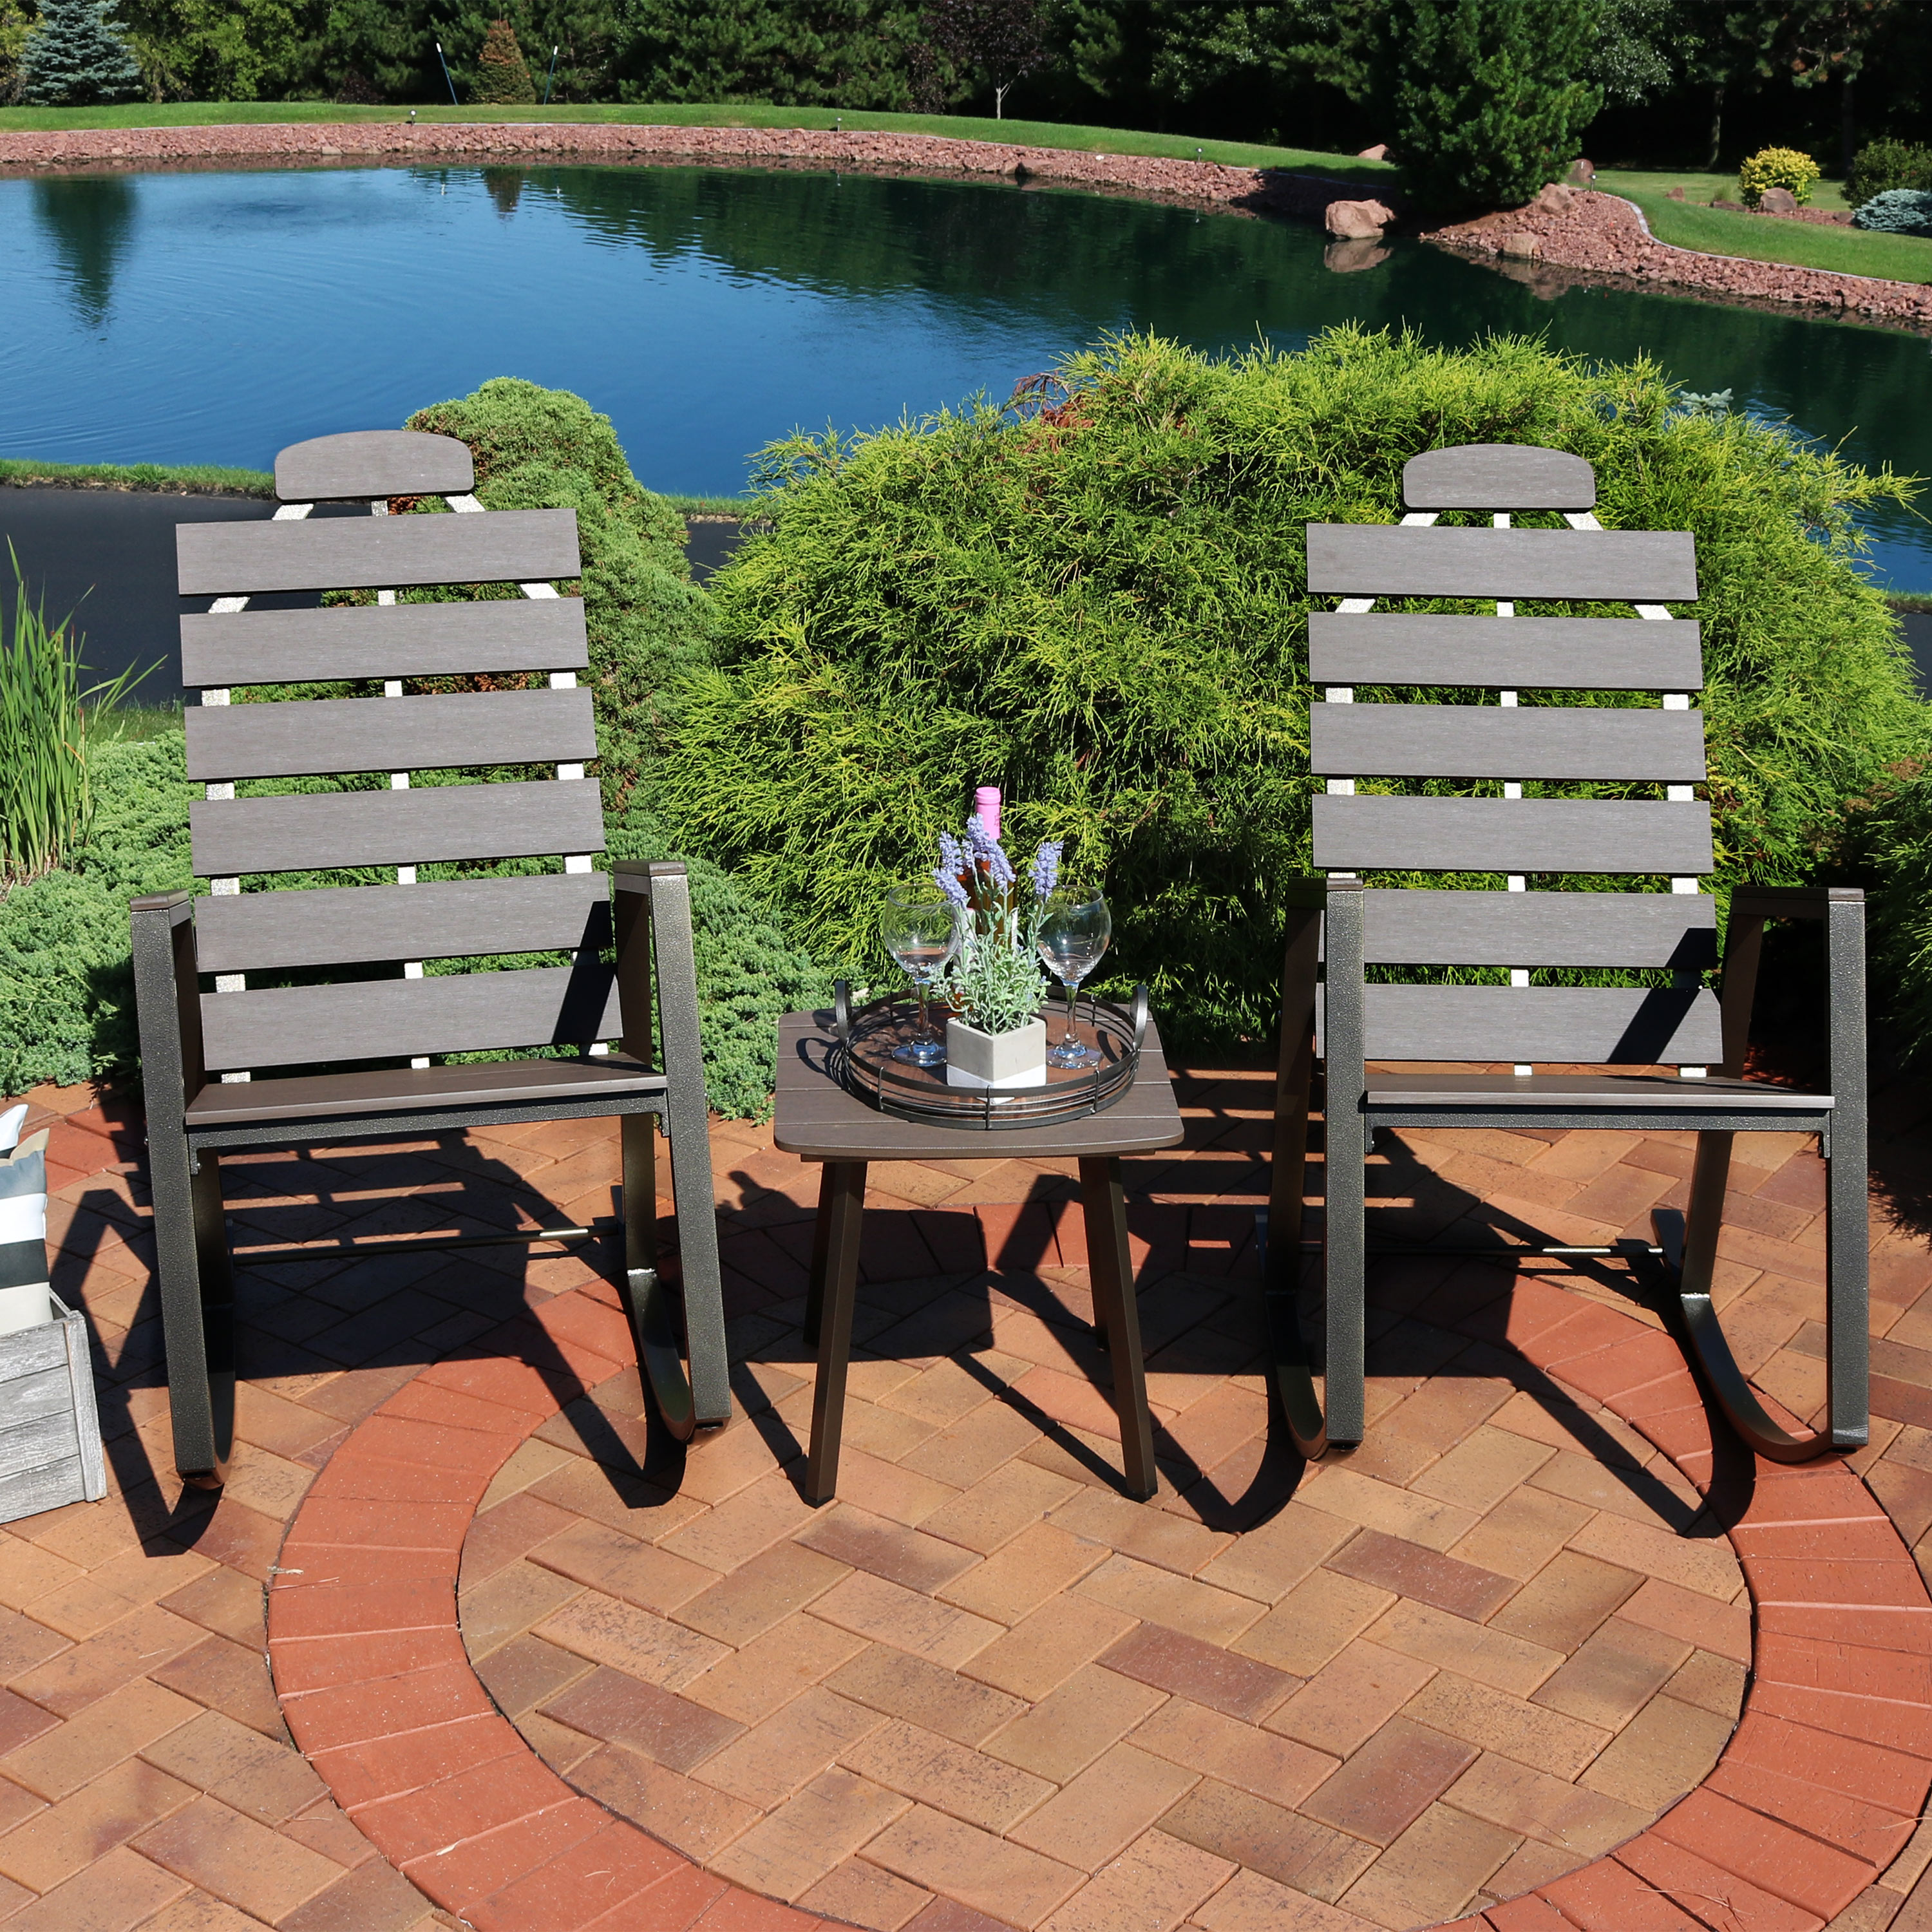 Sunnydaze All Weather Slatted Outdoor Patio Rocking Chairs With Side Table Front Porch Furniture 3 Piece Set Faux Wood Design